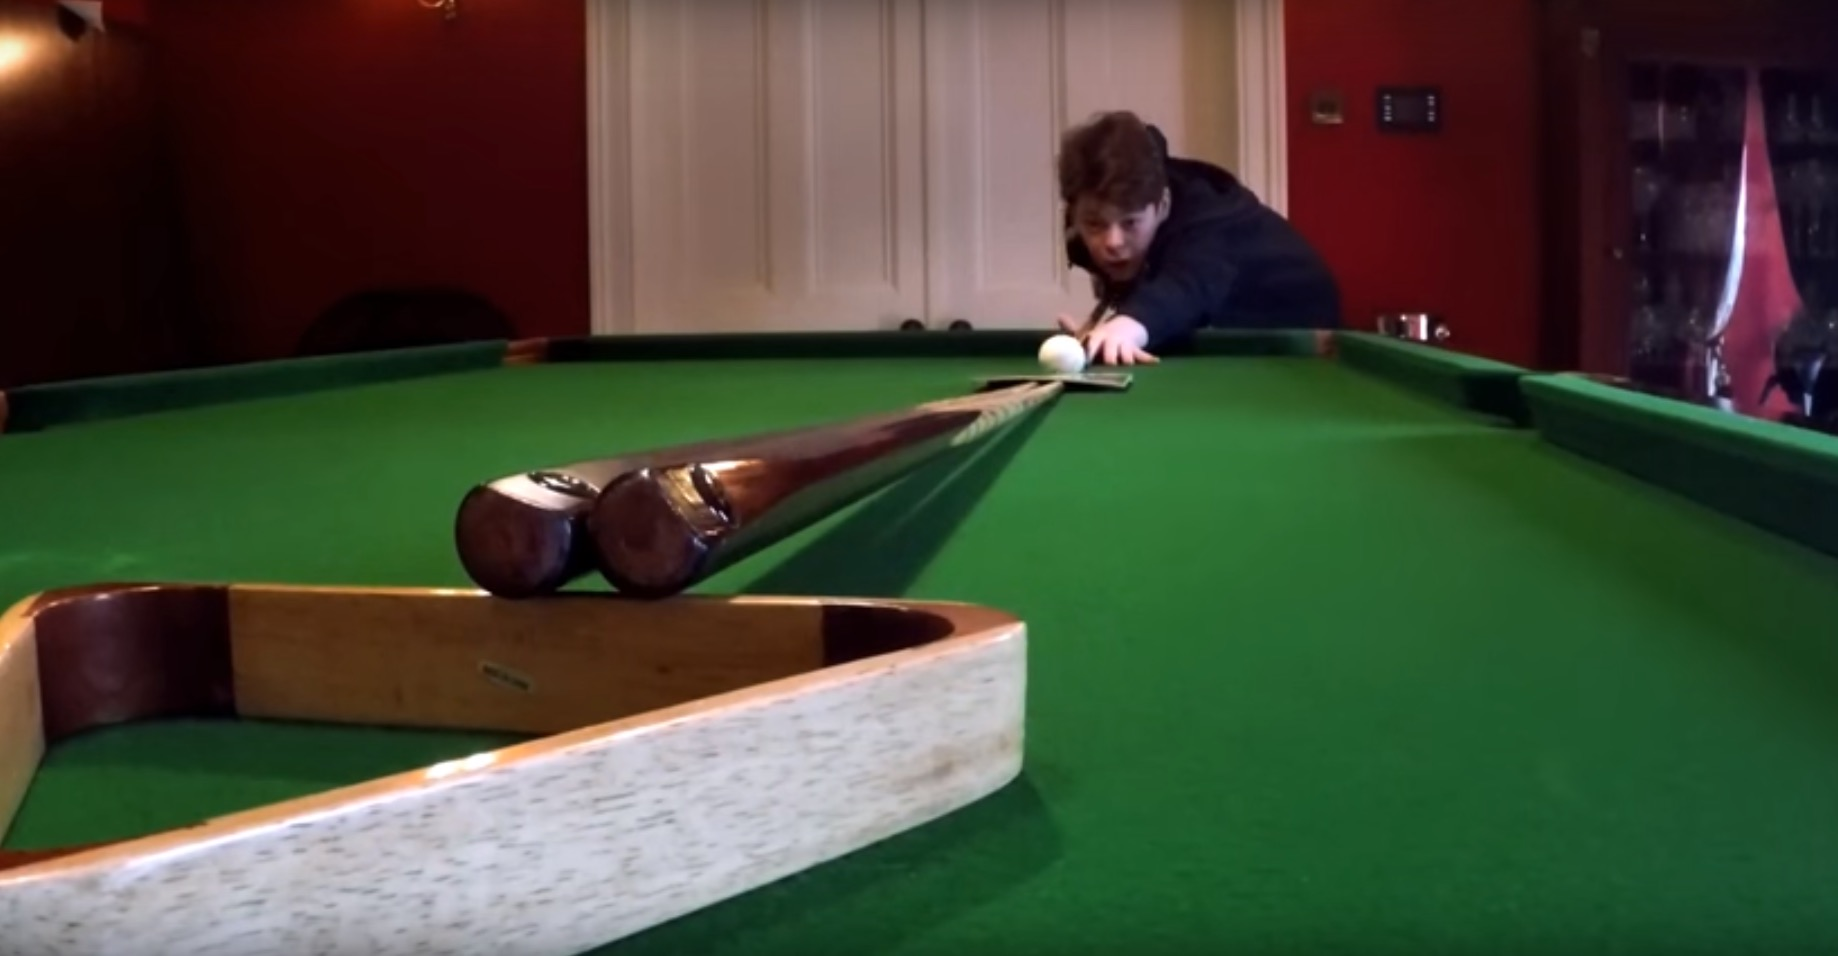 Gopro captures amazing pool trick shots rtm - Awesome swimming pool trick shots ...